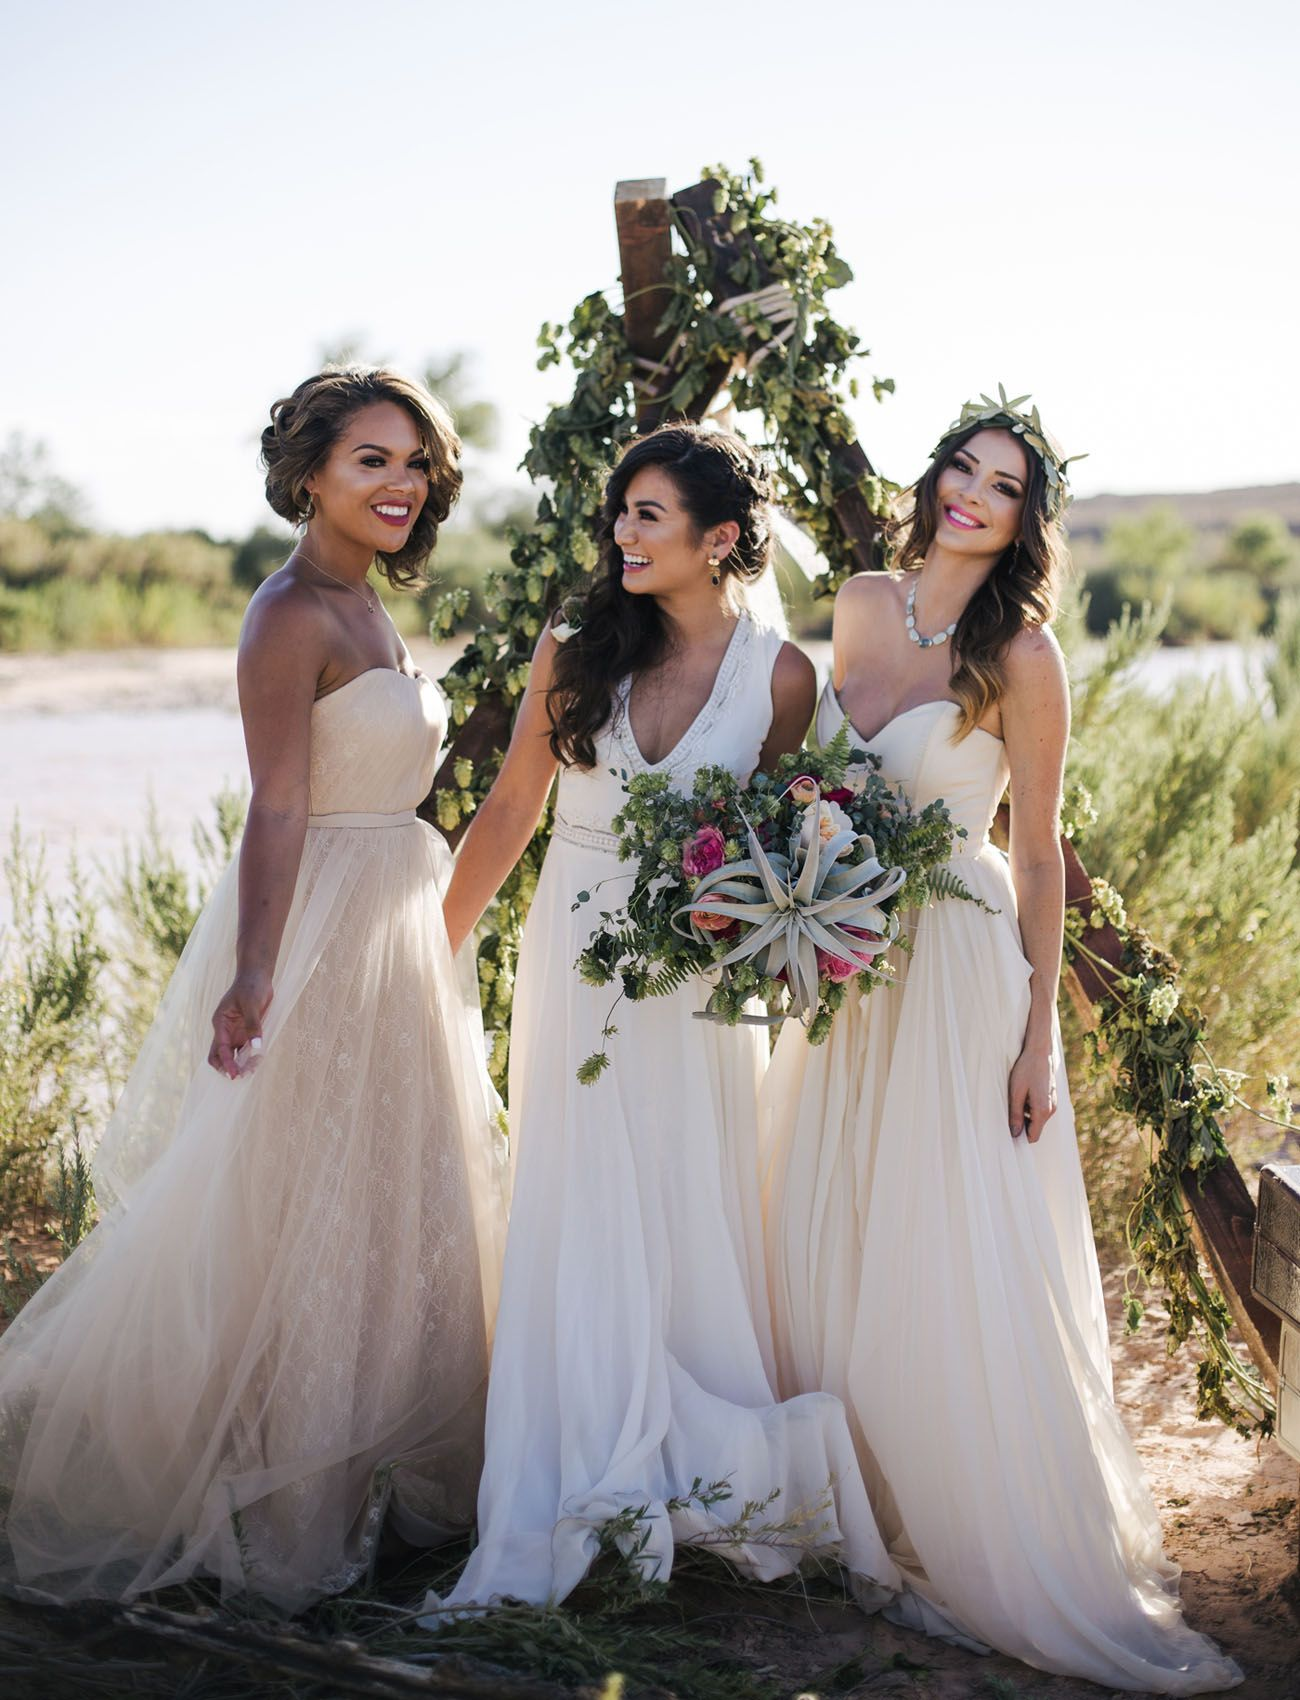 Romantic Desert Shoot with the Ladies of The Bachelor  Caila quinn